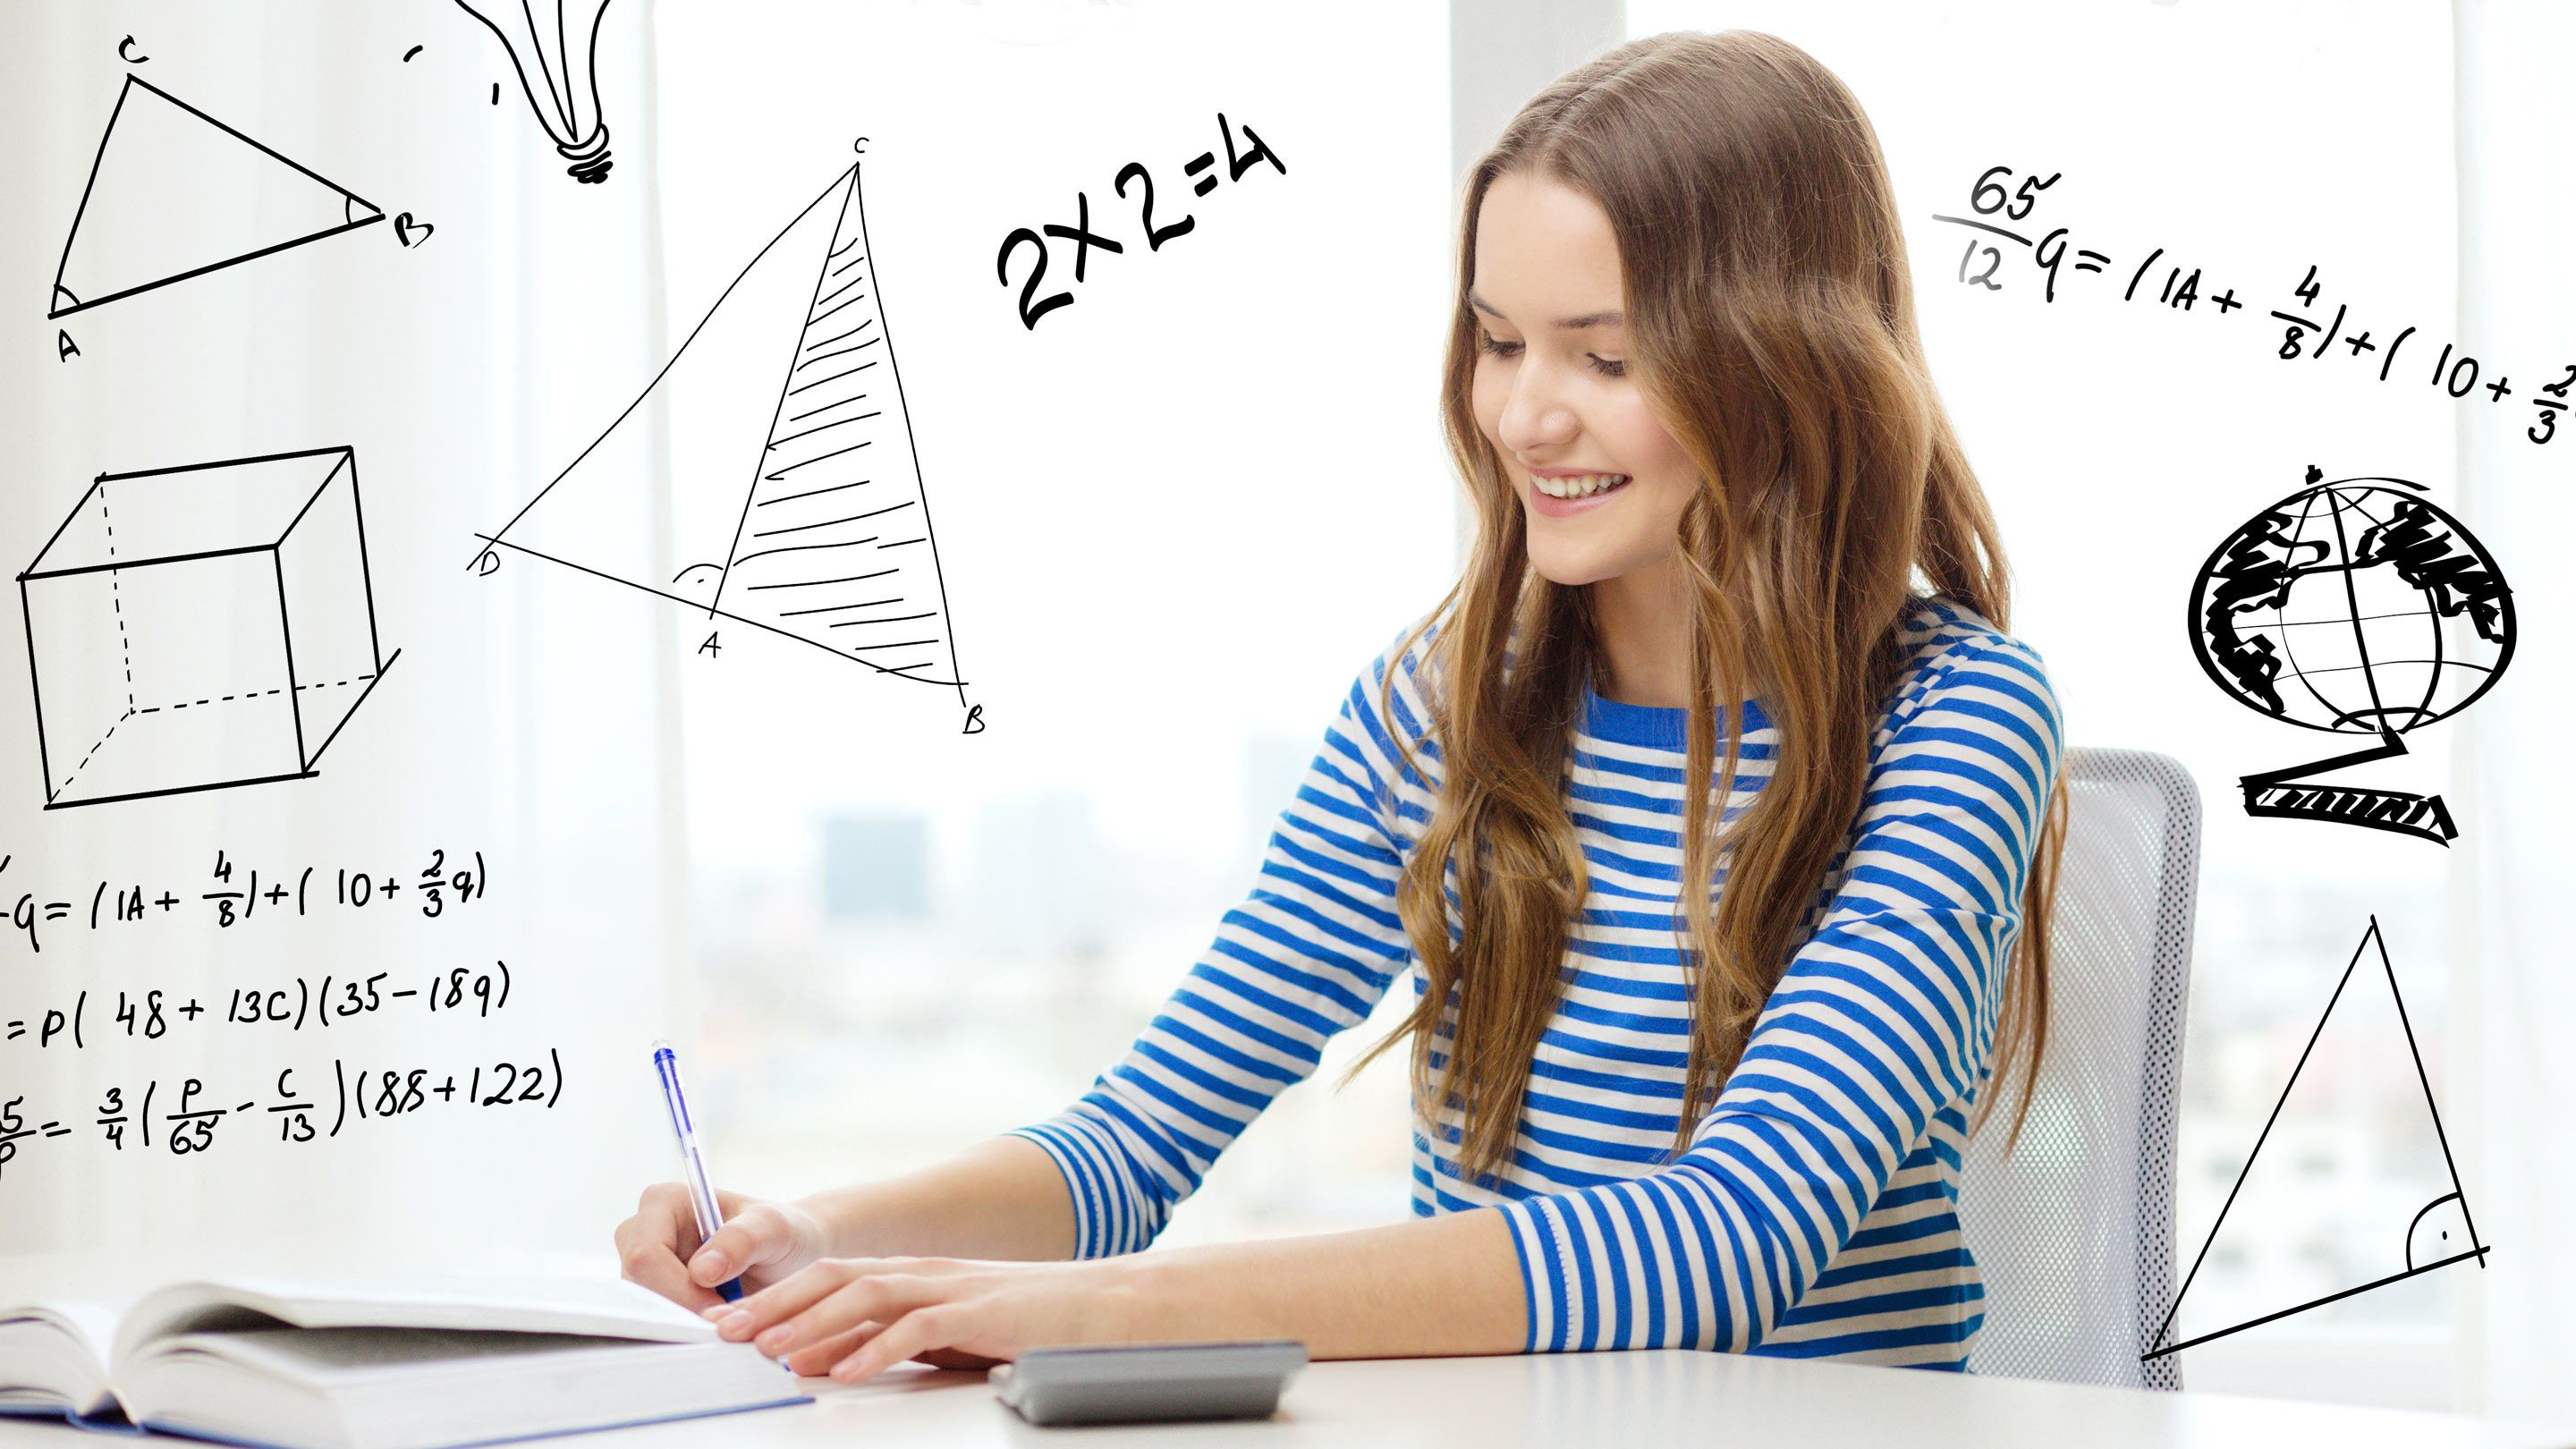 Photo of a student working on her math assignment, with diagrams and formulas written on the photo